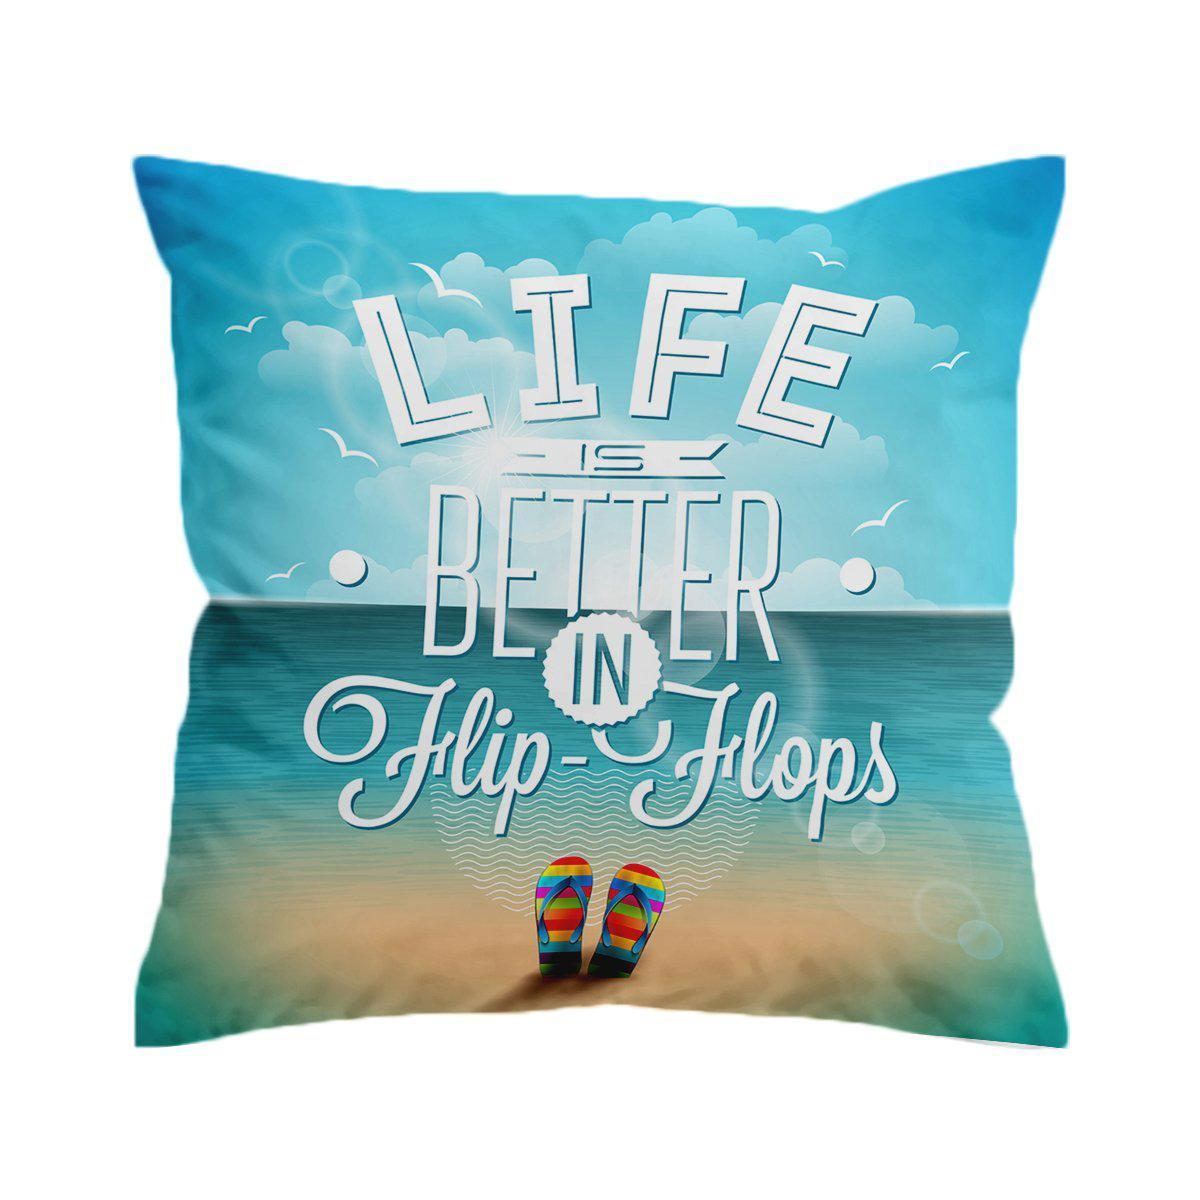 Flip Flops Way of Life Pillow Cover-Coastal Passion